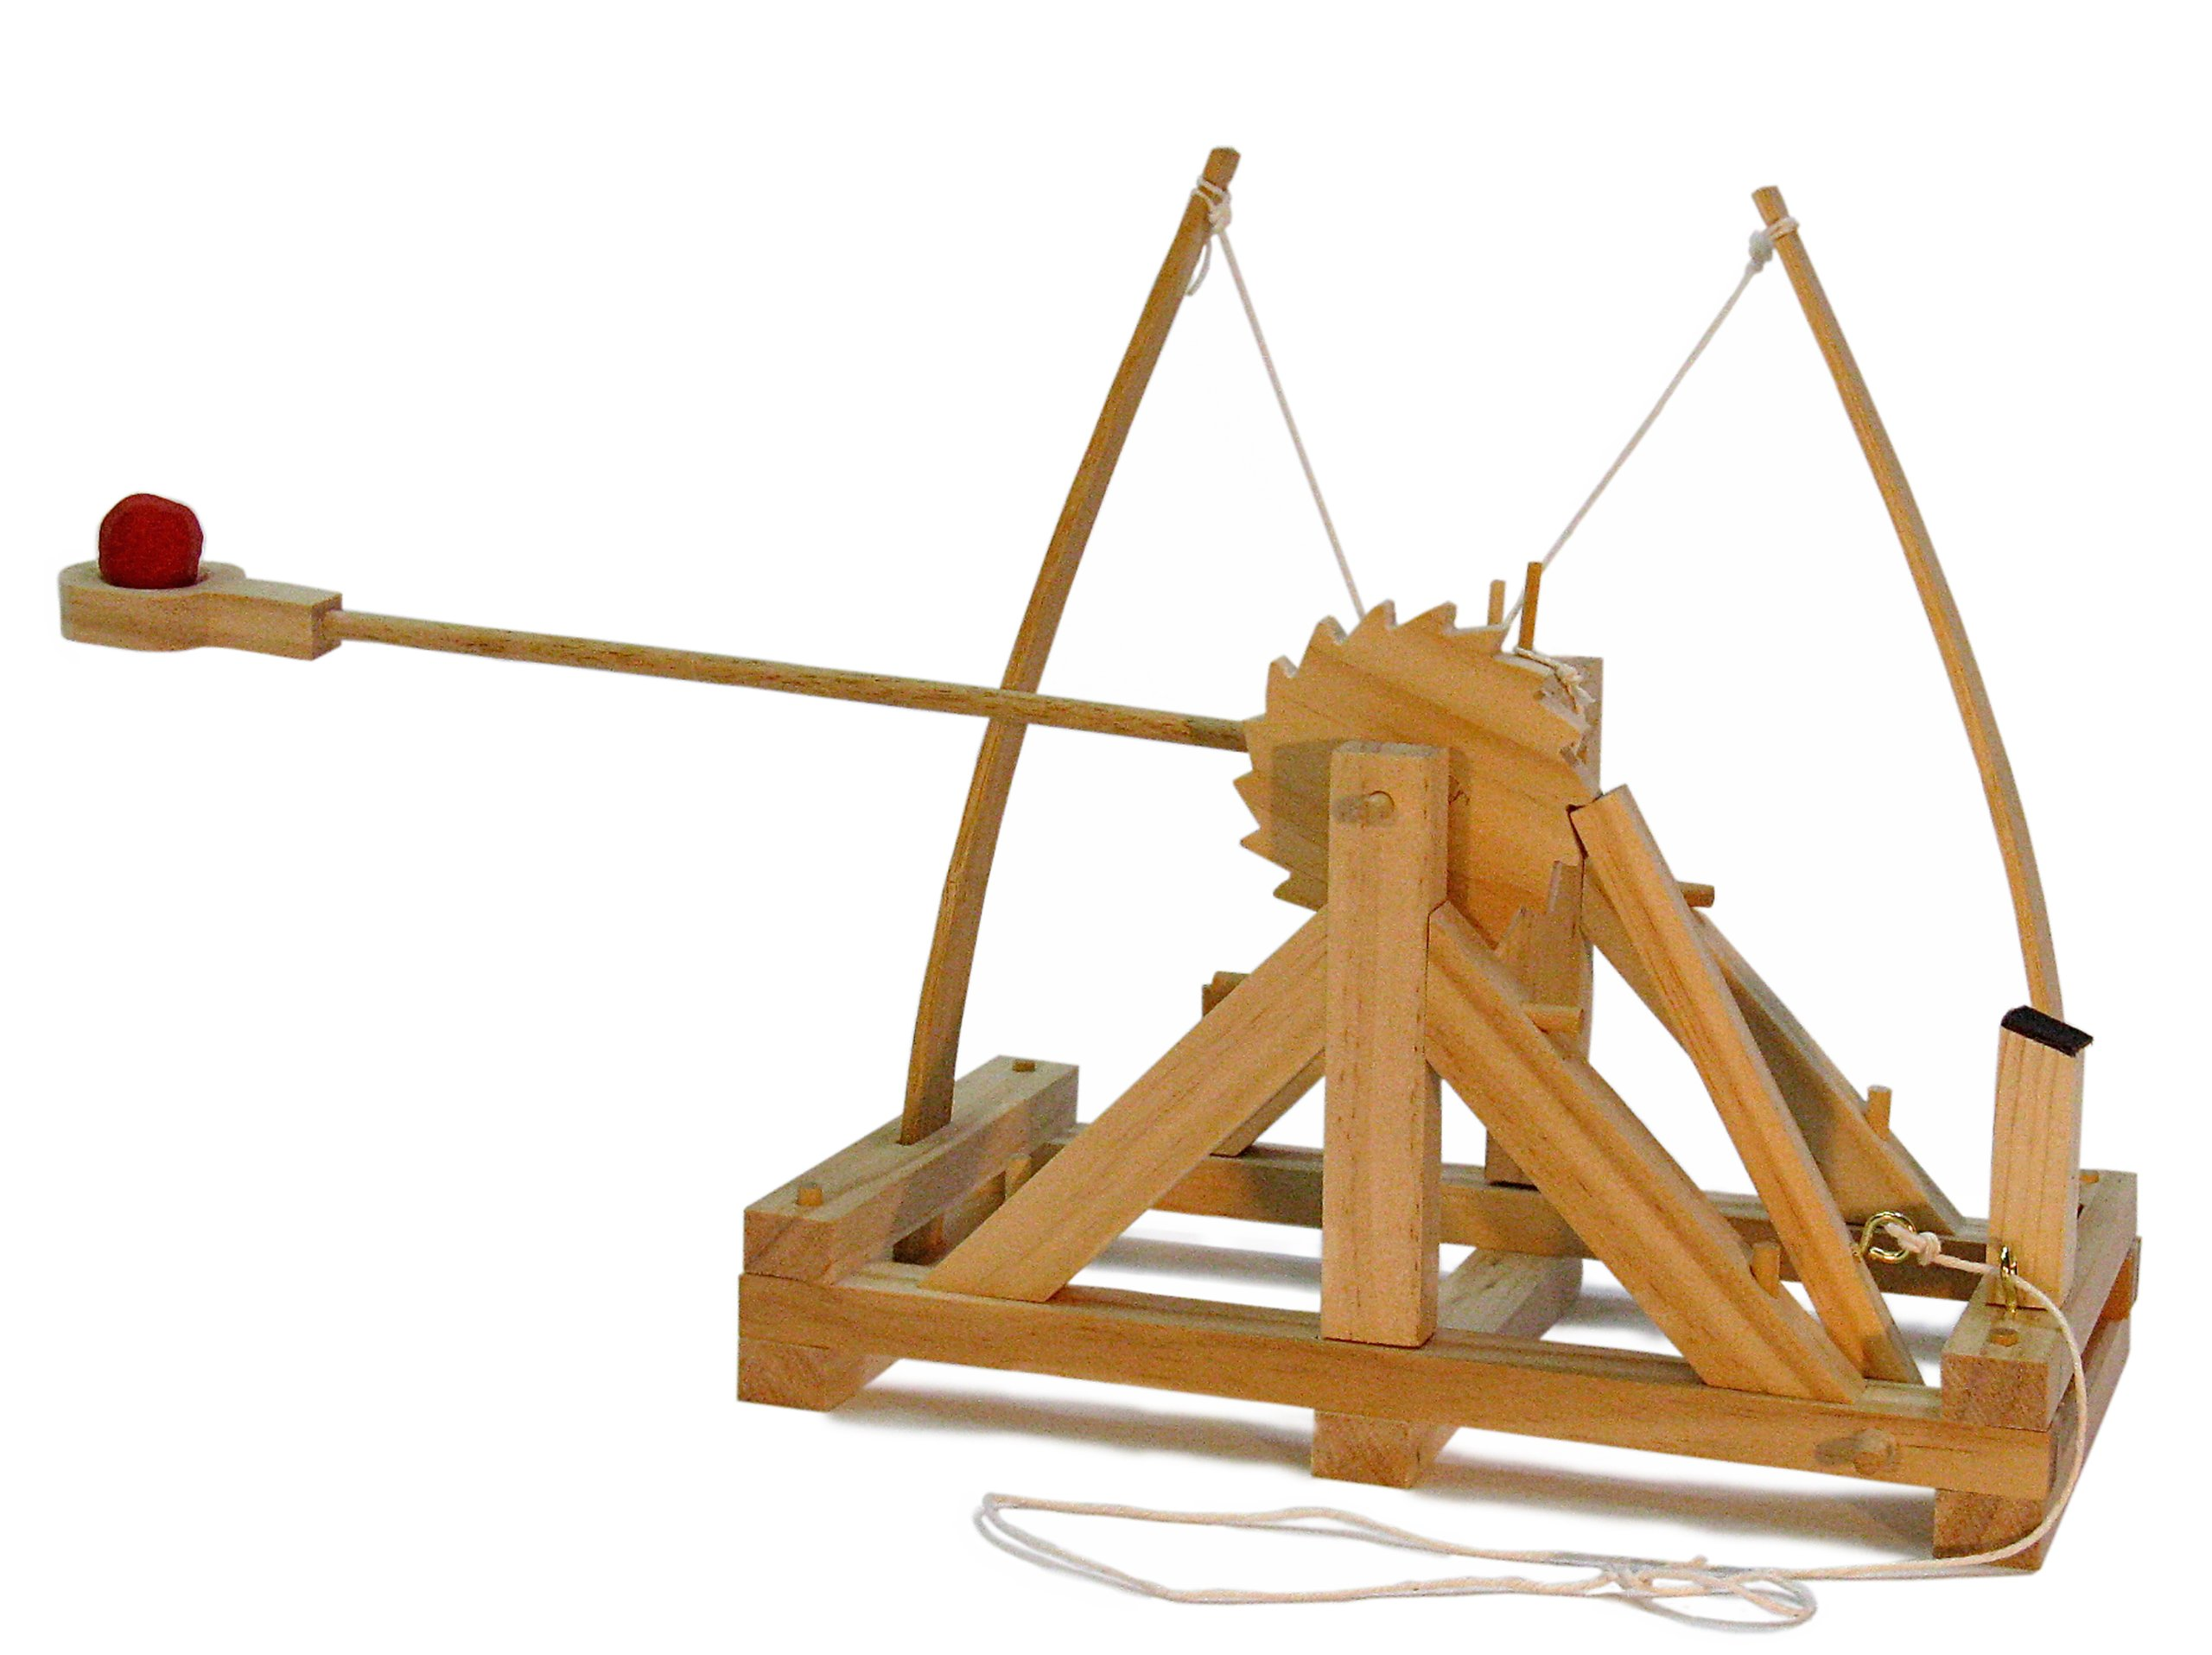 Buy Leonardo Da Vinci Catapult Kit Now!